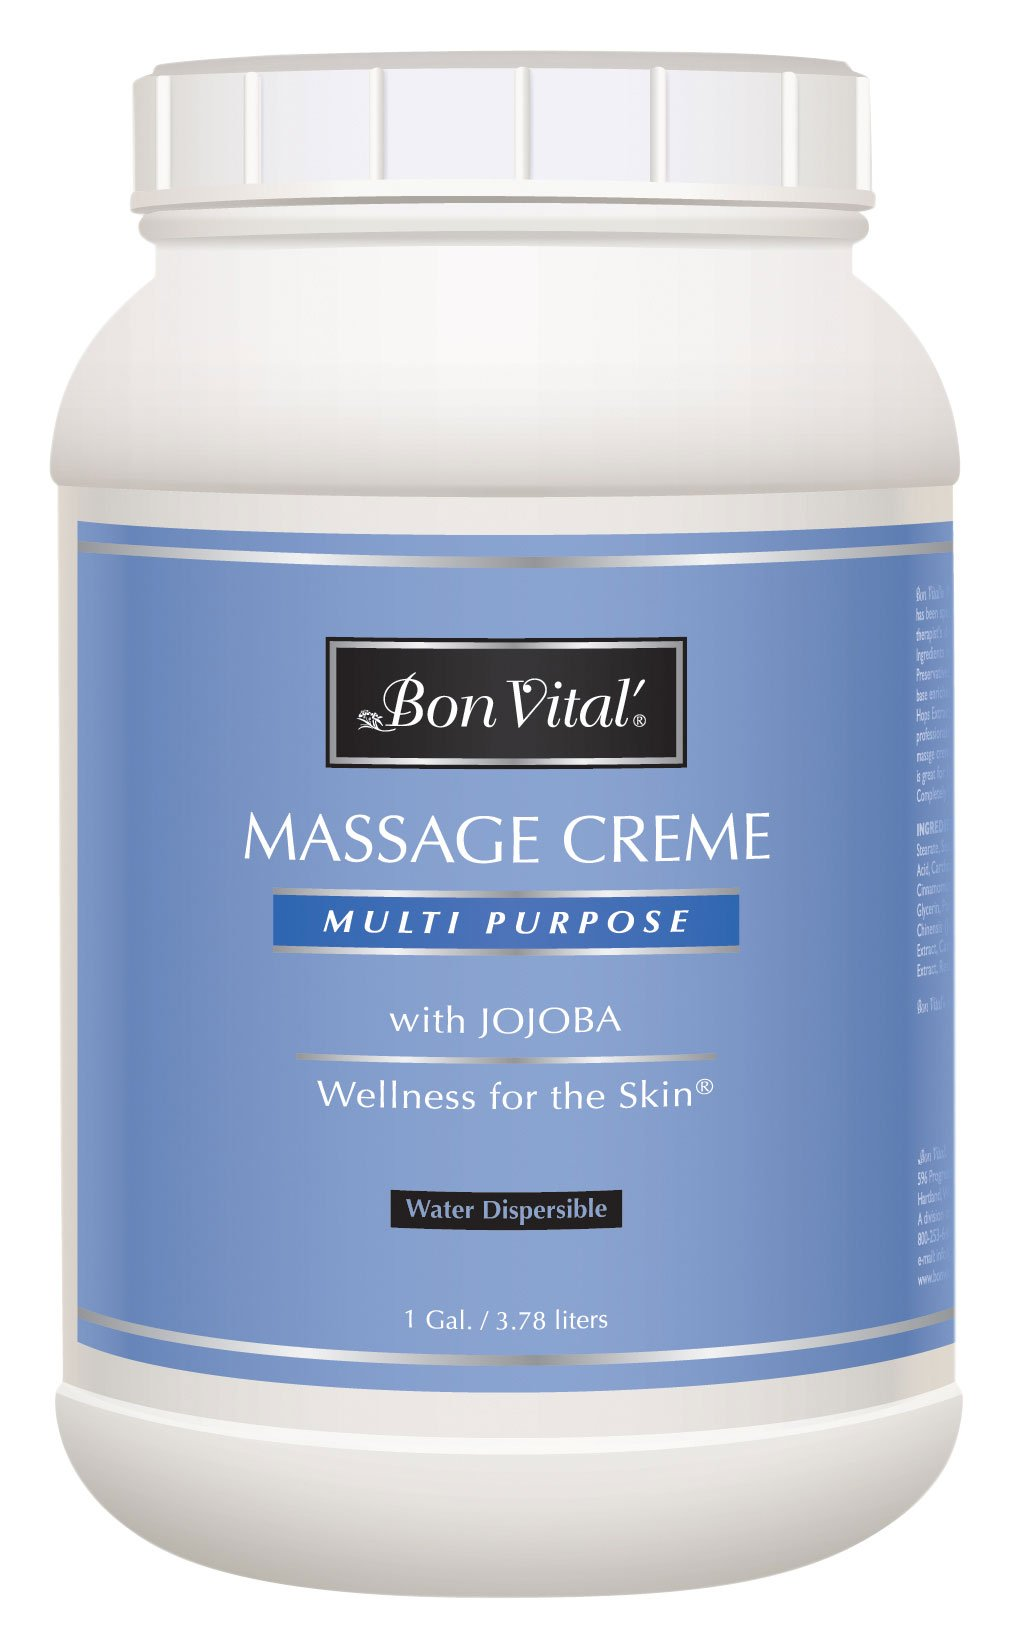 Bon Vital' Multi-Purpose Massage Crème, Professional Massage Cream with Aloe Vera to Relax Sore Muscles, Increase Circulation & Repair Dry Skin, Full Body Massage Moisturizer Cream, 1 Gallon Jar